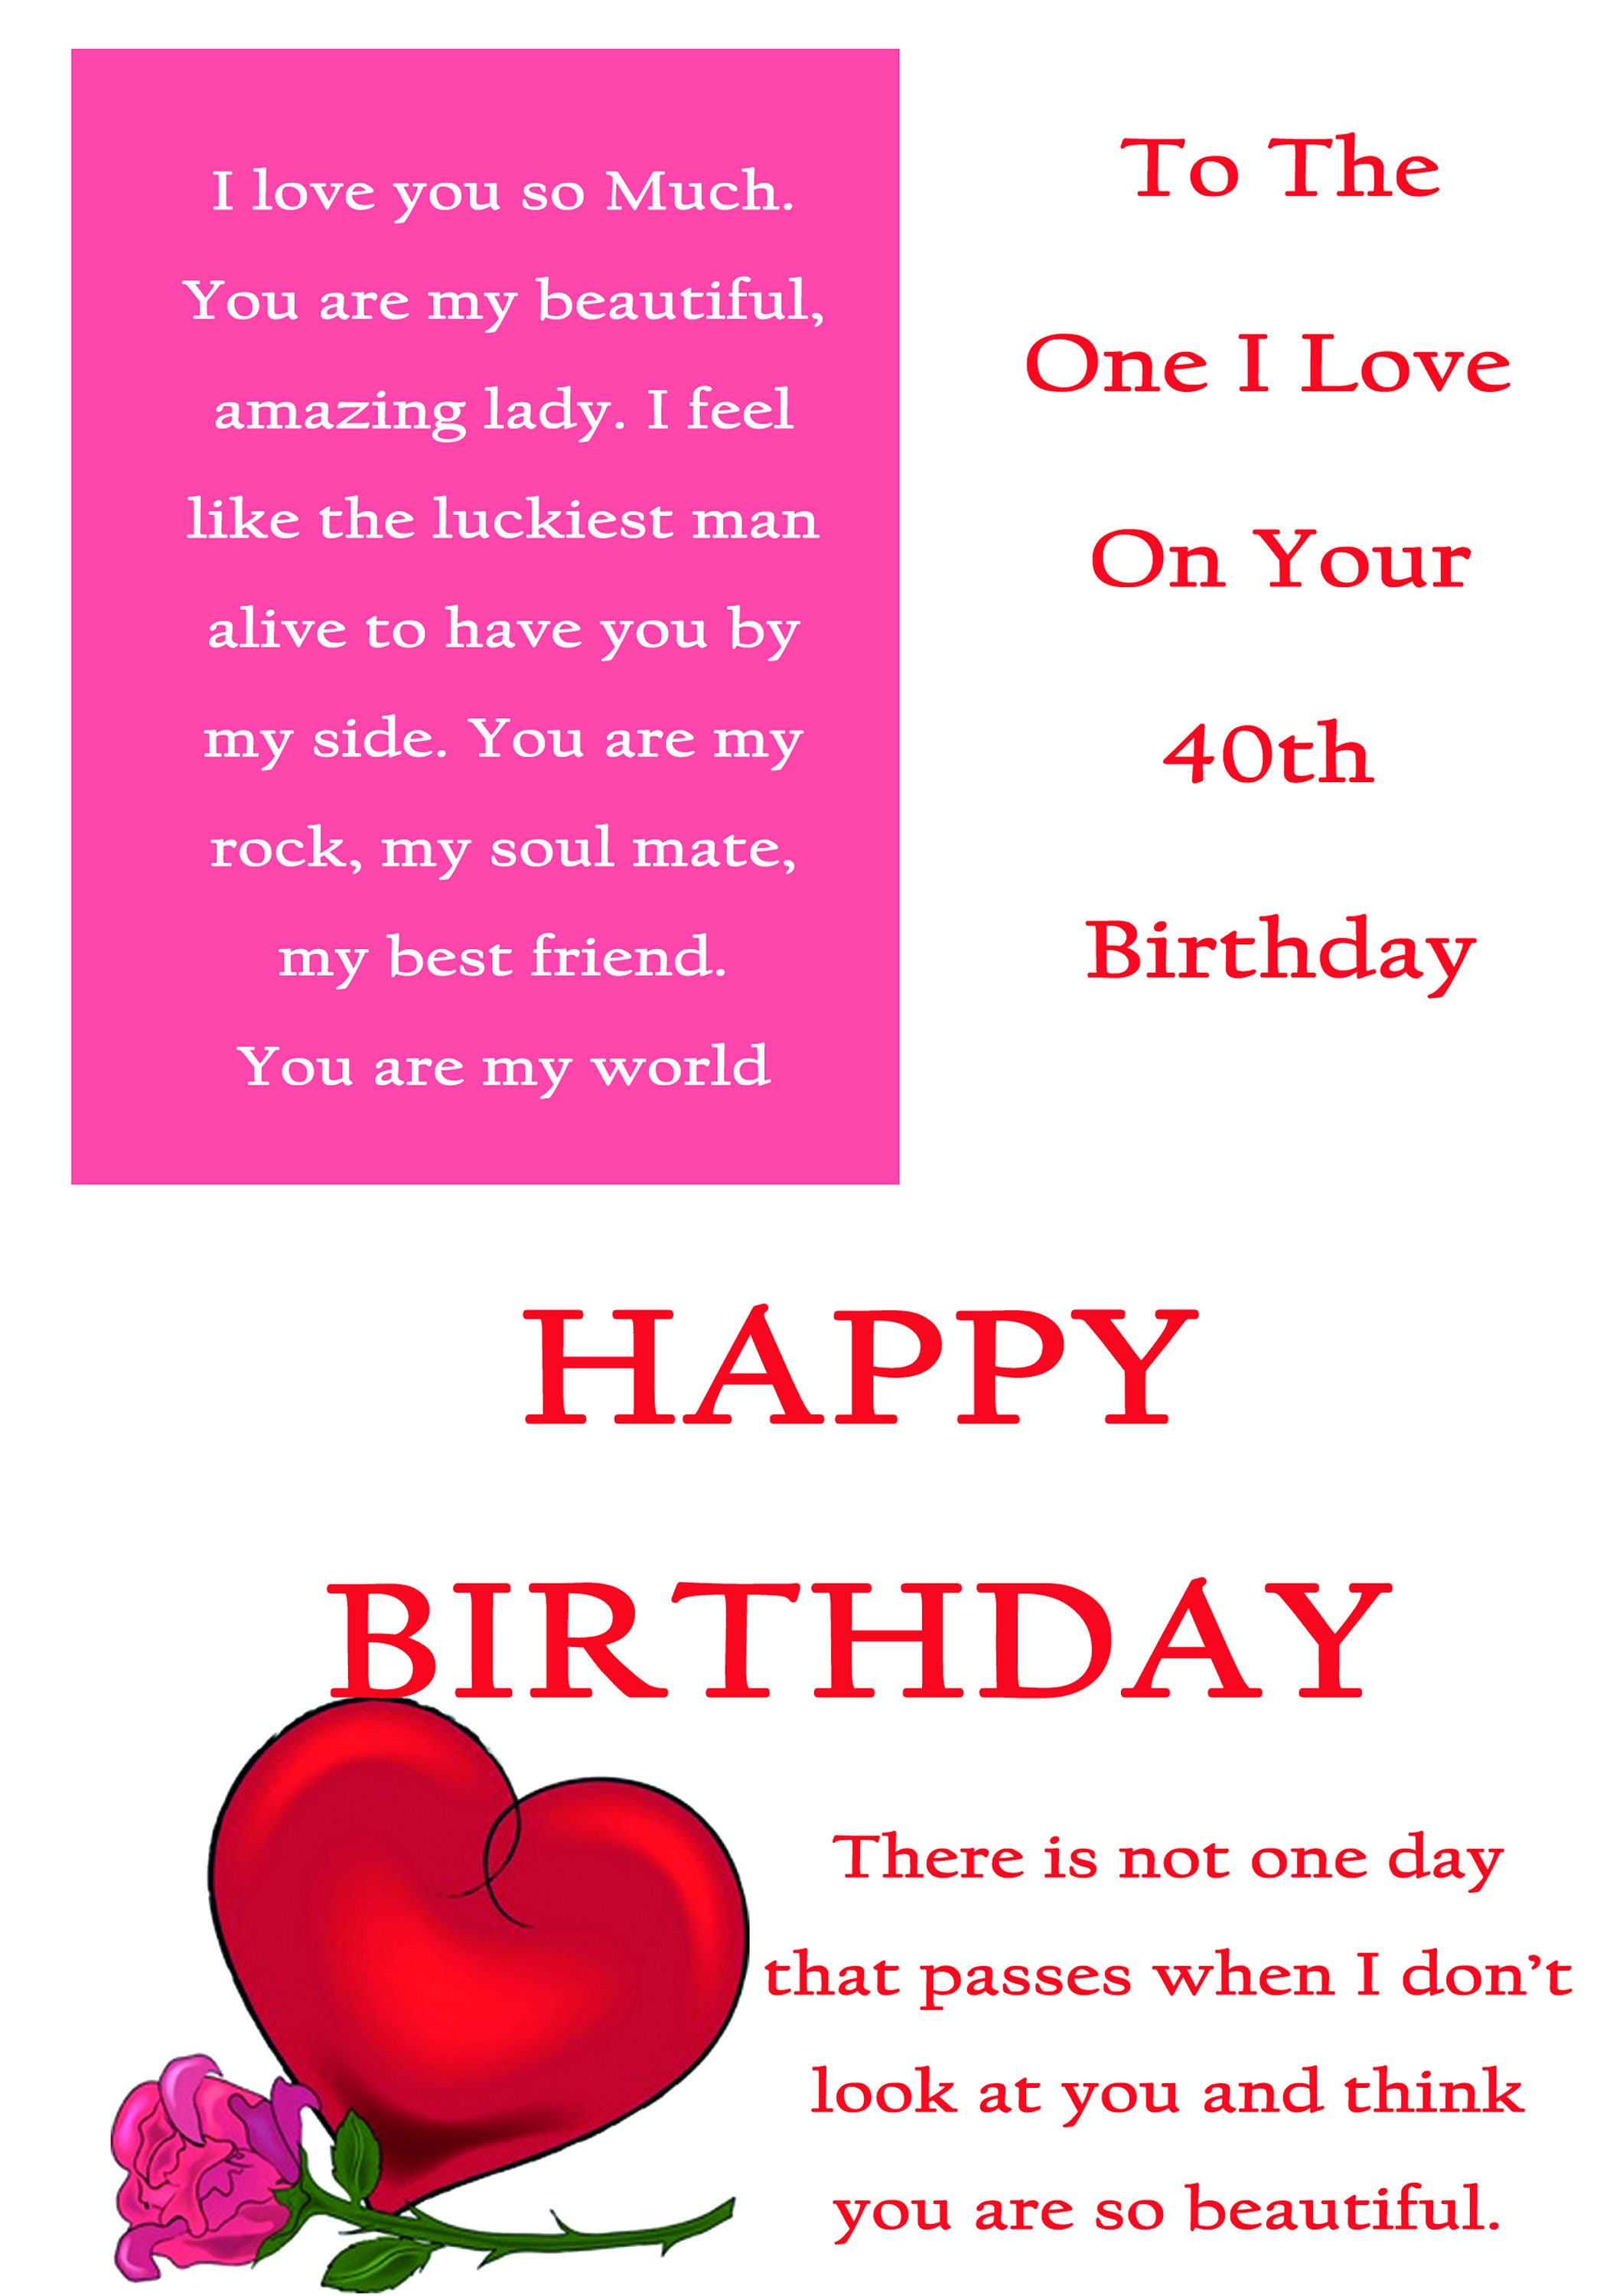 One I Love 40 Birthday Card With Removale Laminate